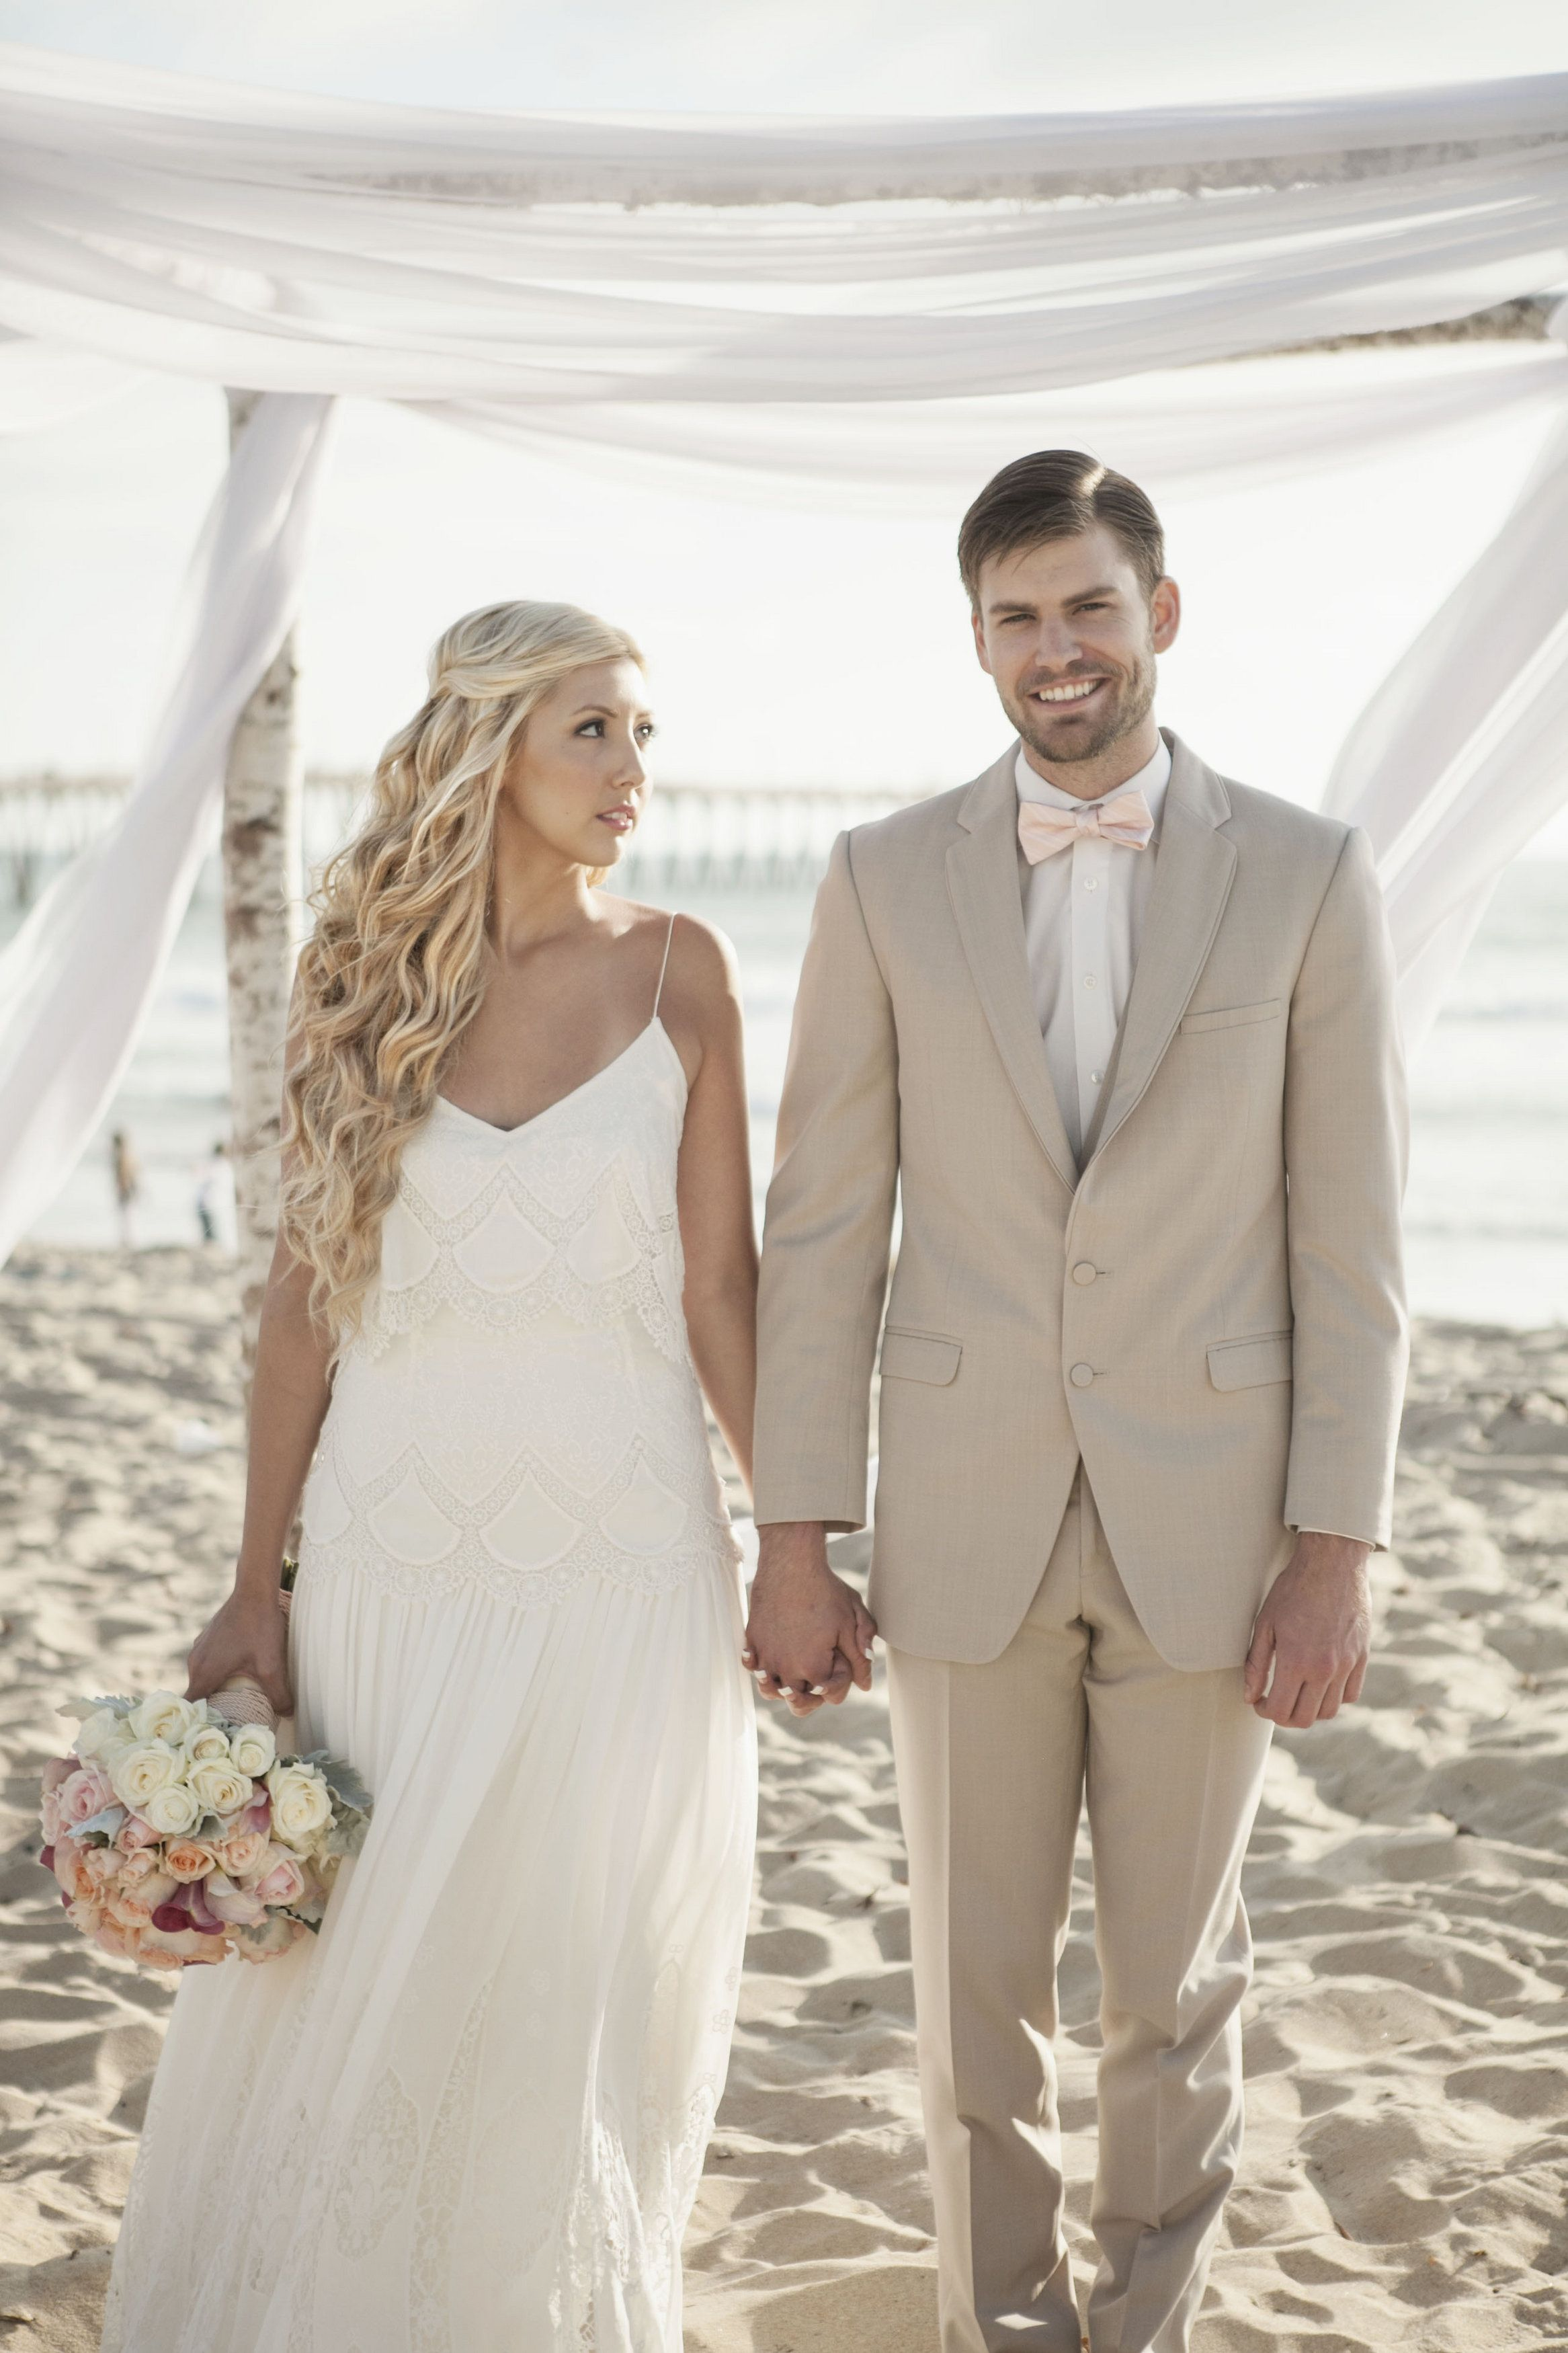 Beach Wedding Boho Lace Dress Tan Suit San Diego Beach Wedding